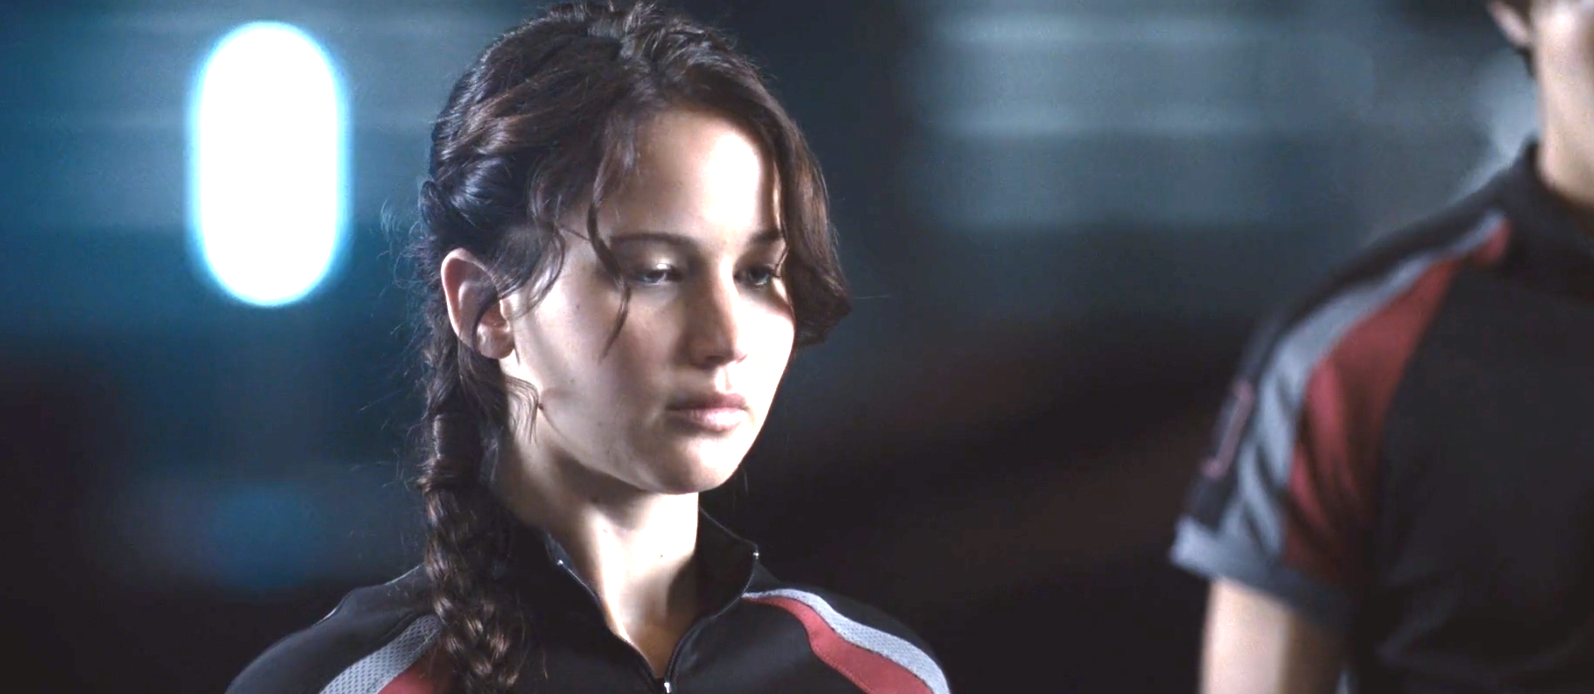 Jennifer Lawrence Katniss sporty side braid hairstyle